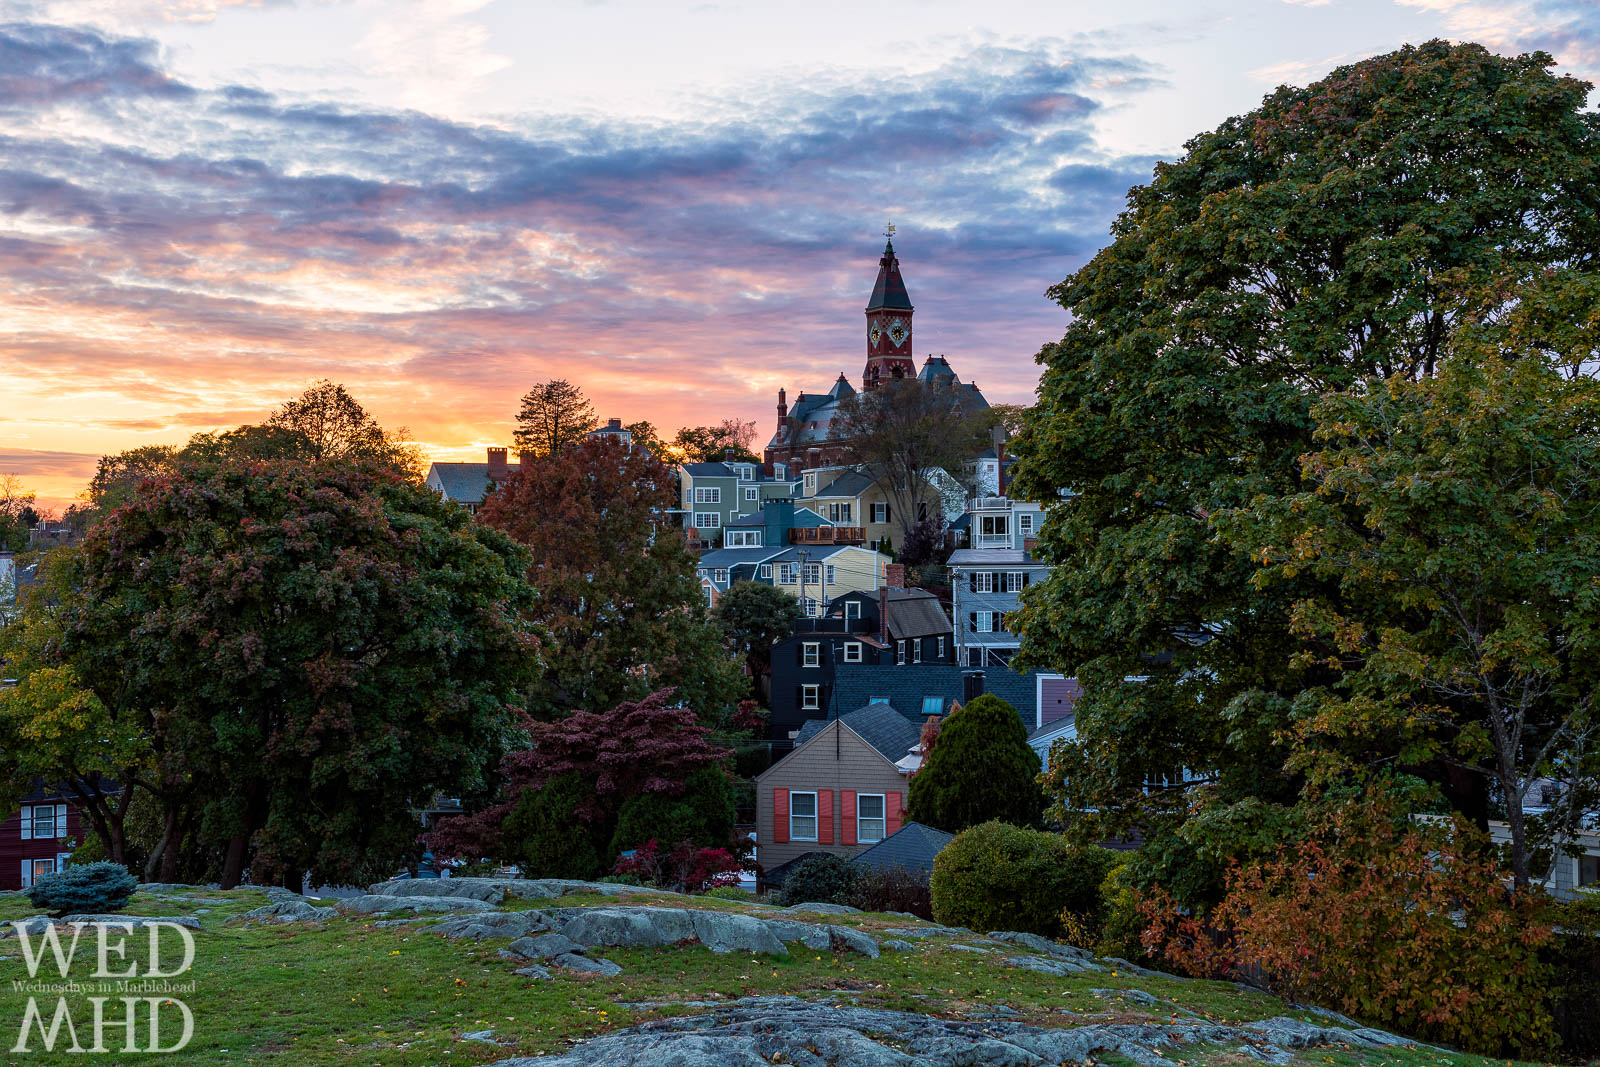 Brilliant sunset colors complement foliage in the trees of Crocker Park with Abbot Hall and houses filling the frame